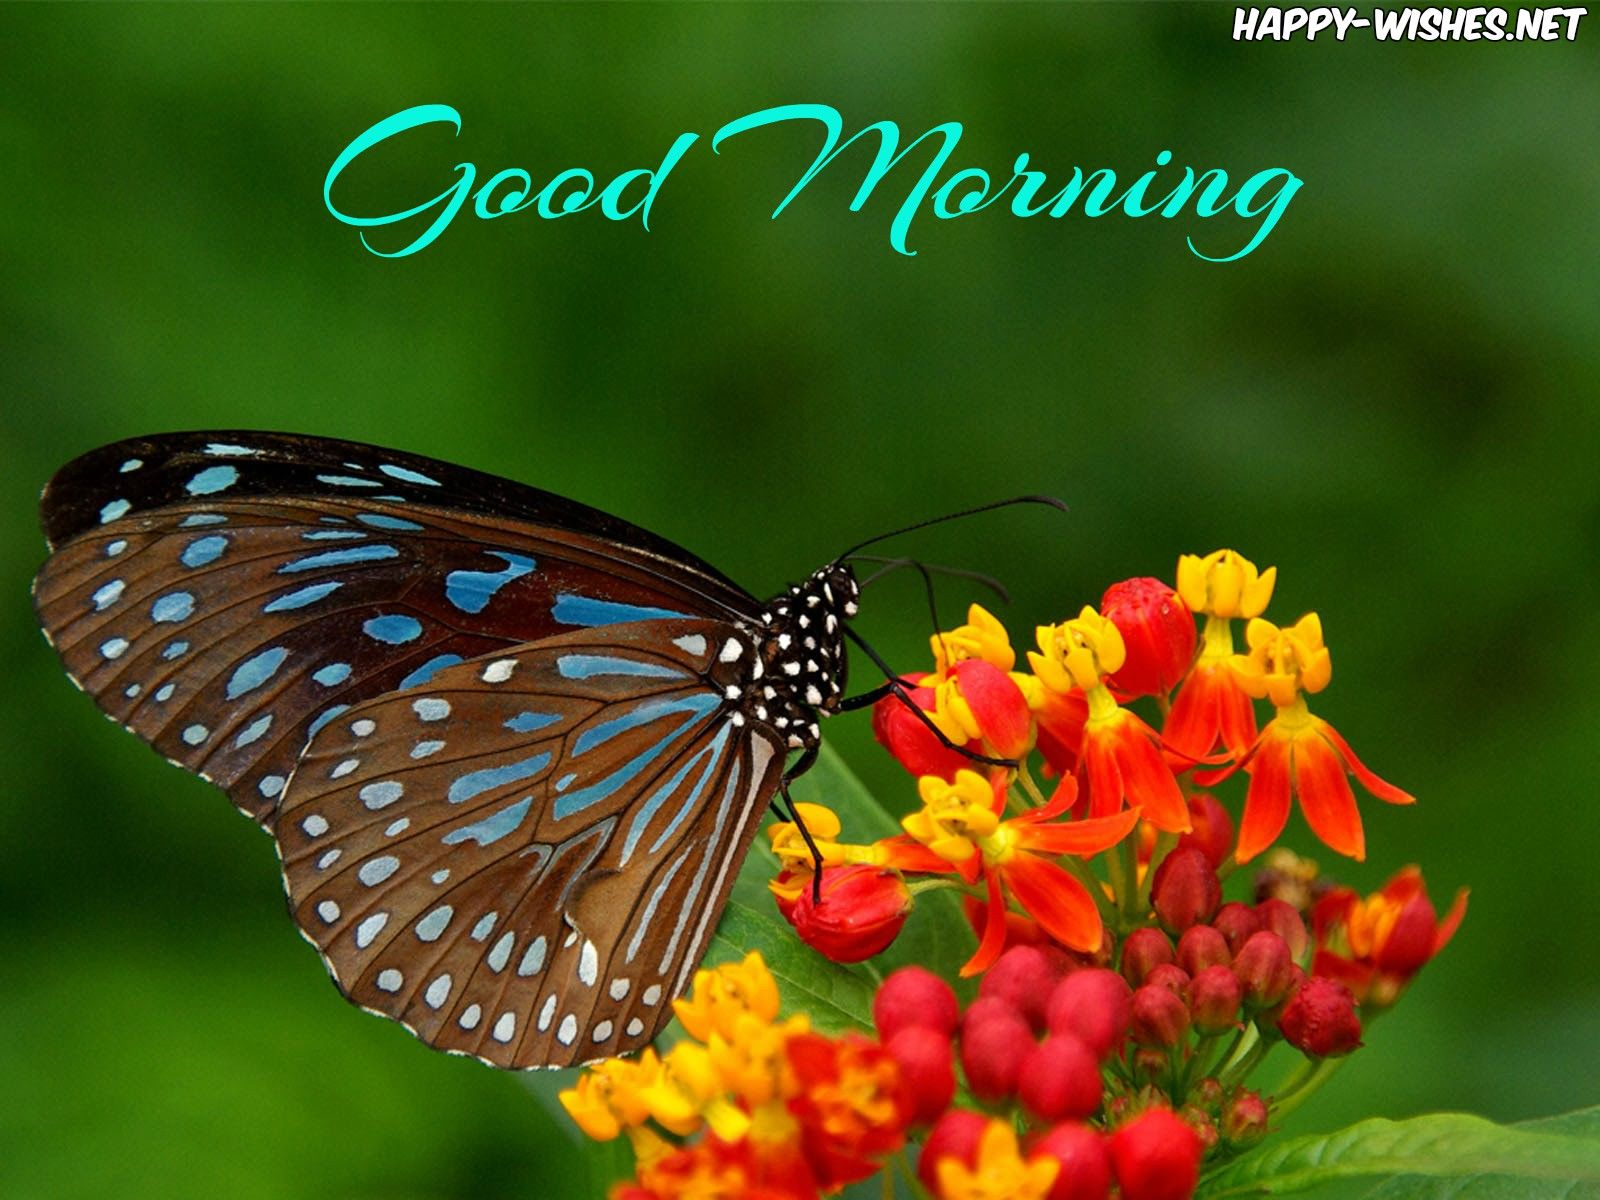 30 Good Morning With Butterfly Images And Quotes Good Morning Beautiful Good Night Wallpaper Good Morning Picture